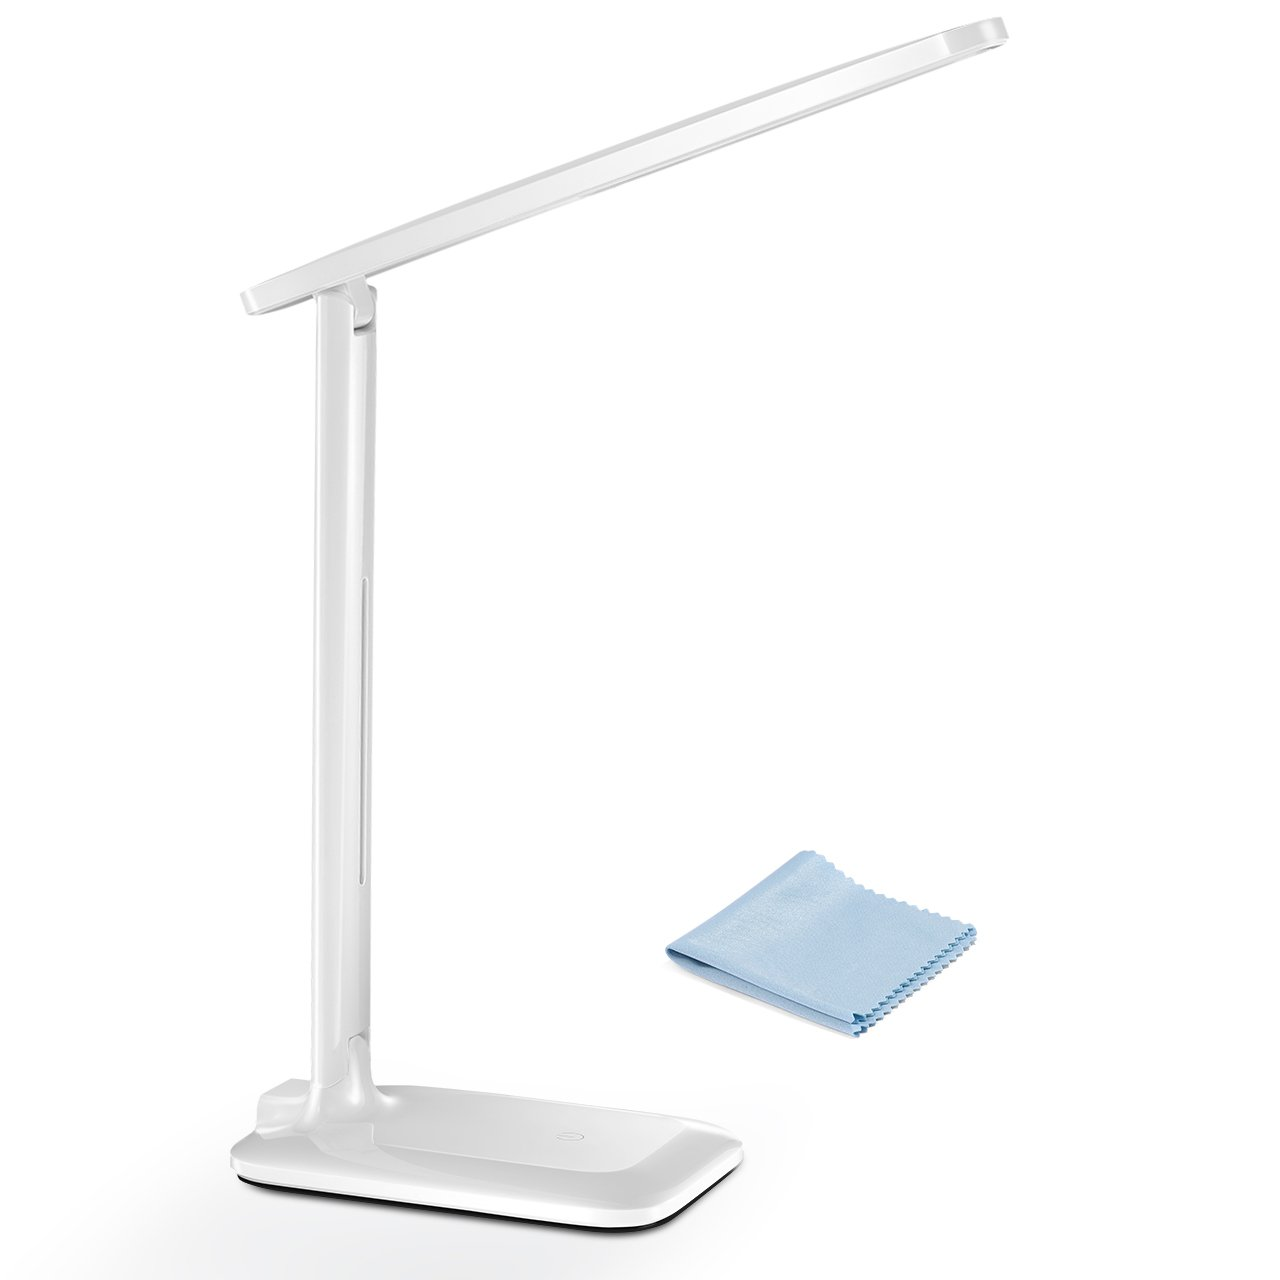 Desk Lamp, TOPELEK Eye-caring LED Table Lamp with 9 Lighting Modes, Warm/Cold Light Adjustable, Touch Control, Memory Function, Flexible Arm for Office, Home, Reading, Studying-White HPGEHM234AWUS-CAAS1